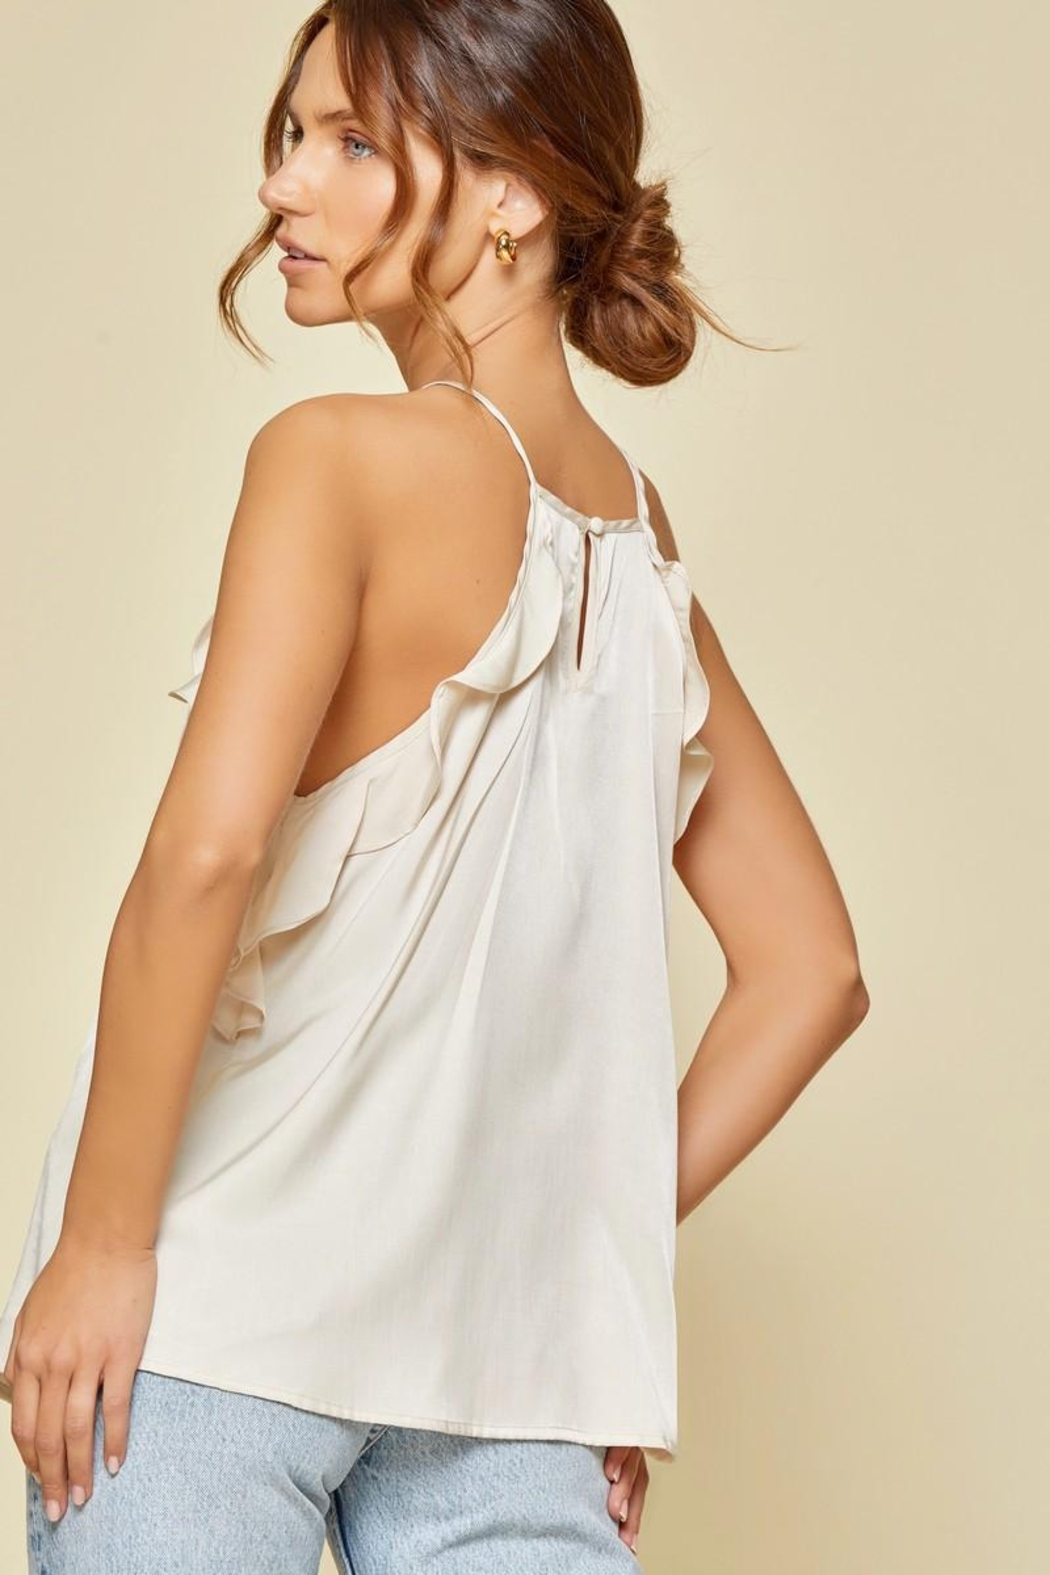 Andree by Unit Ruffle Sleeveless Top - Front Full Image